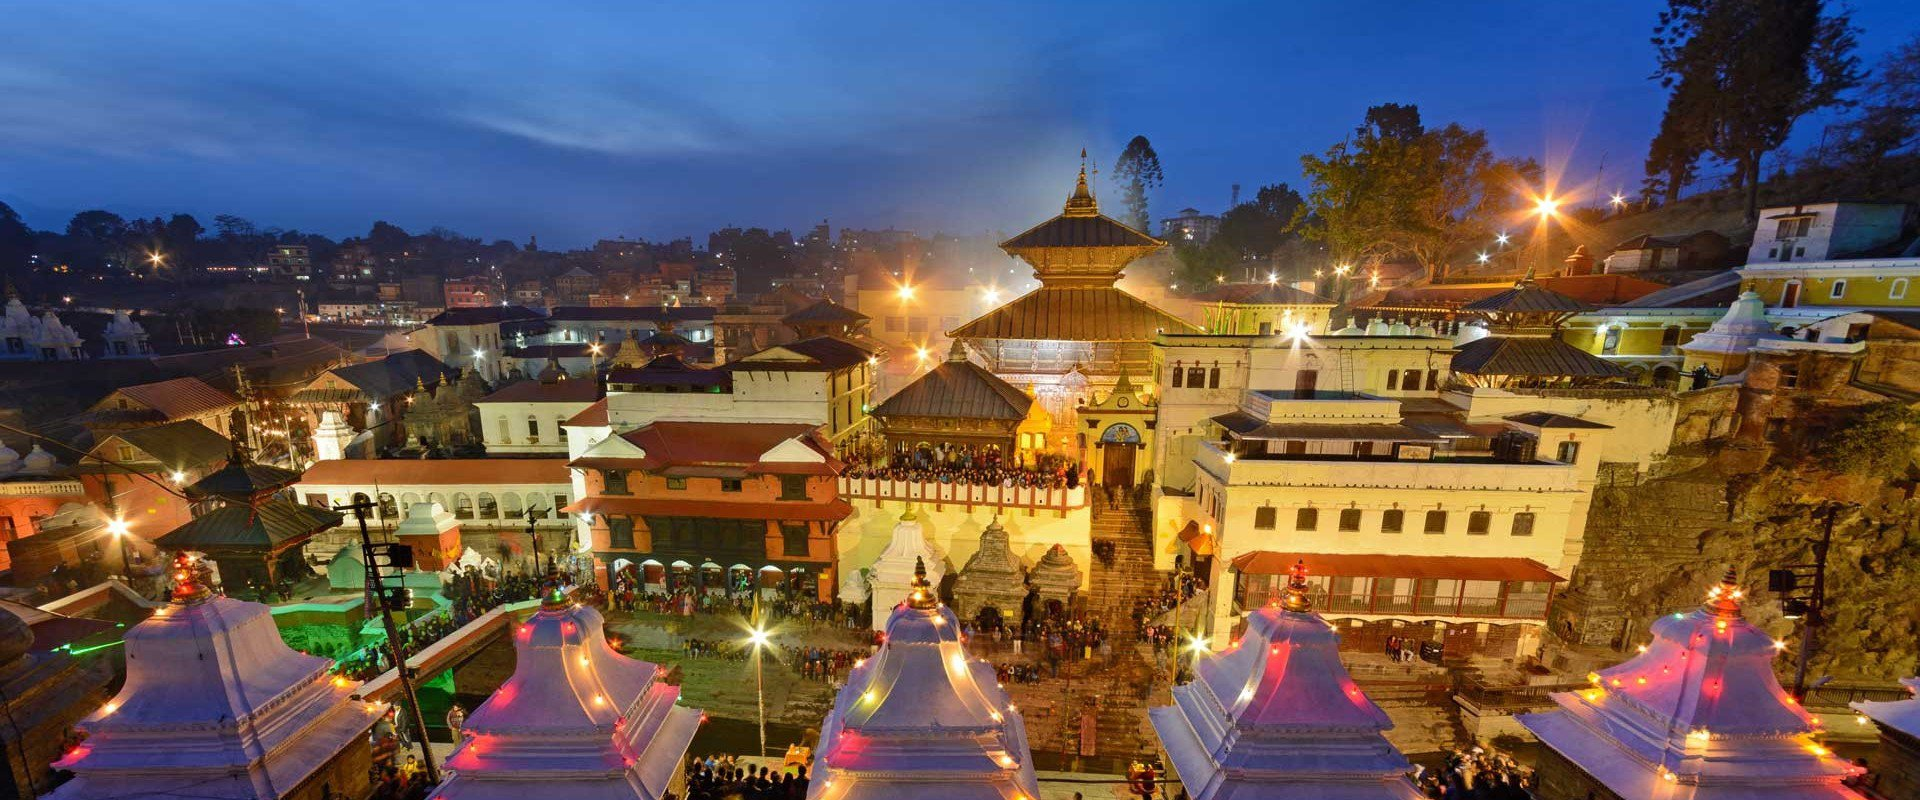 pashupatinath-temple at night